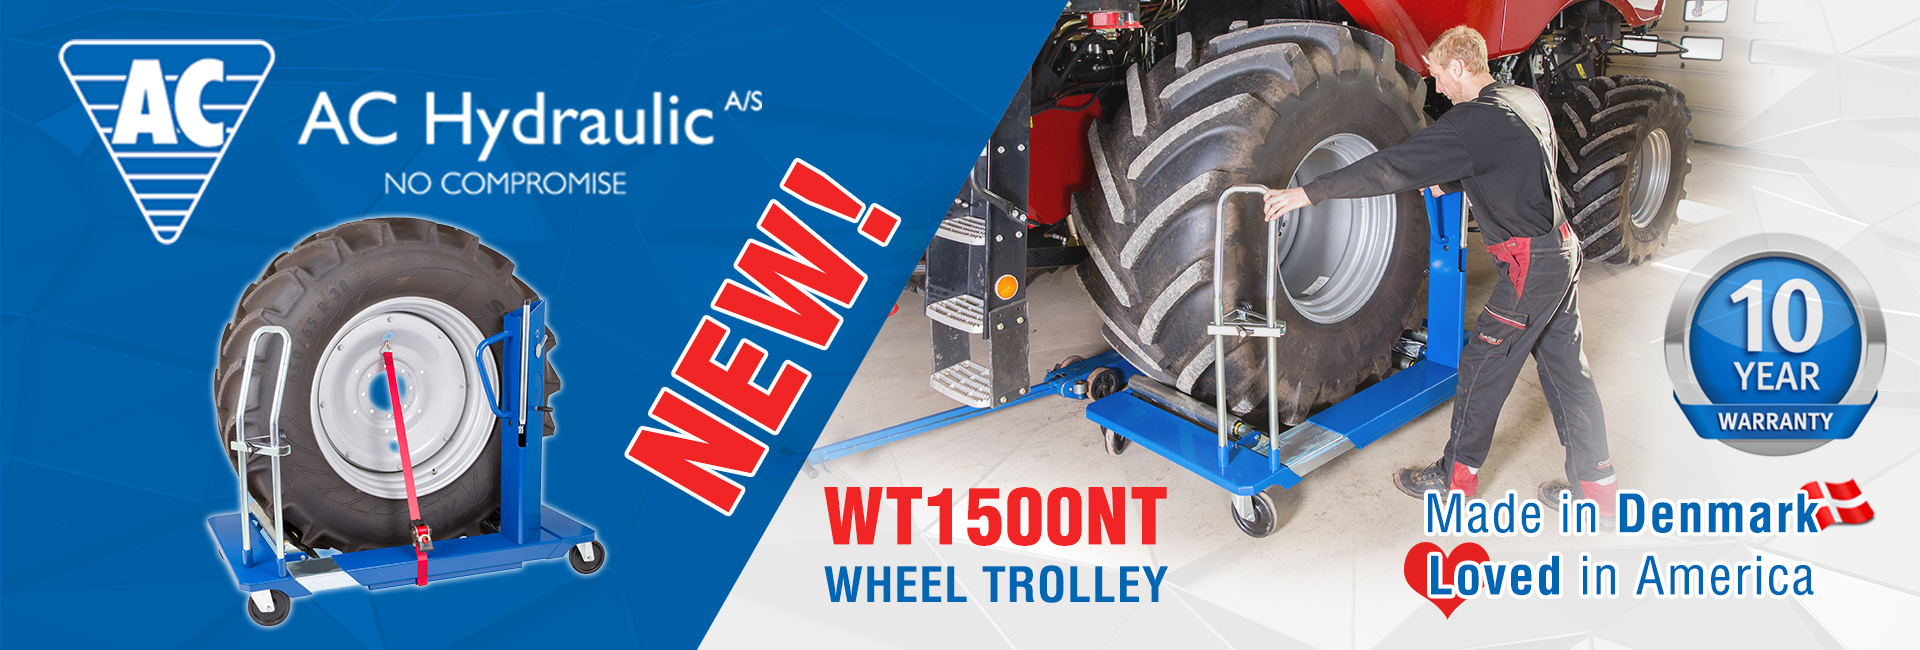 NEW AC Hydraulic WT1500NT Wheel Trolley